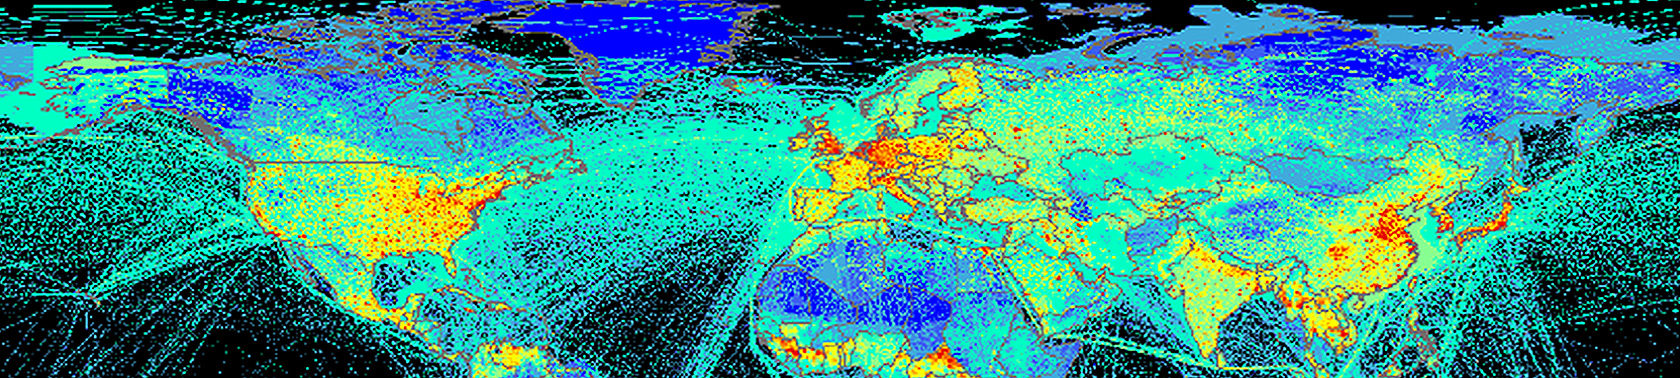 Fossil fuel emission maps obtained from global/national inventories